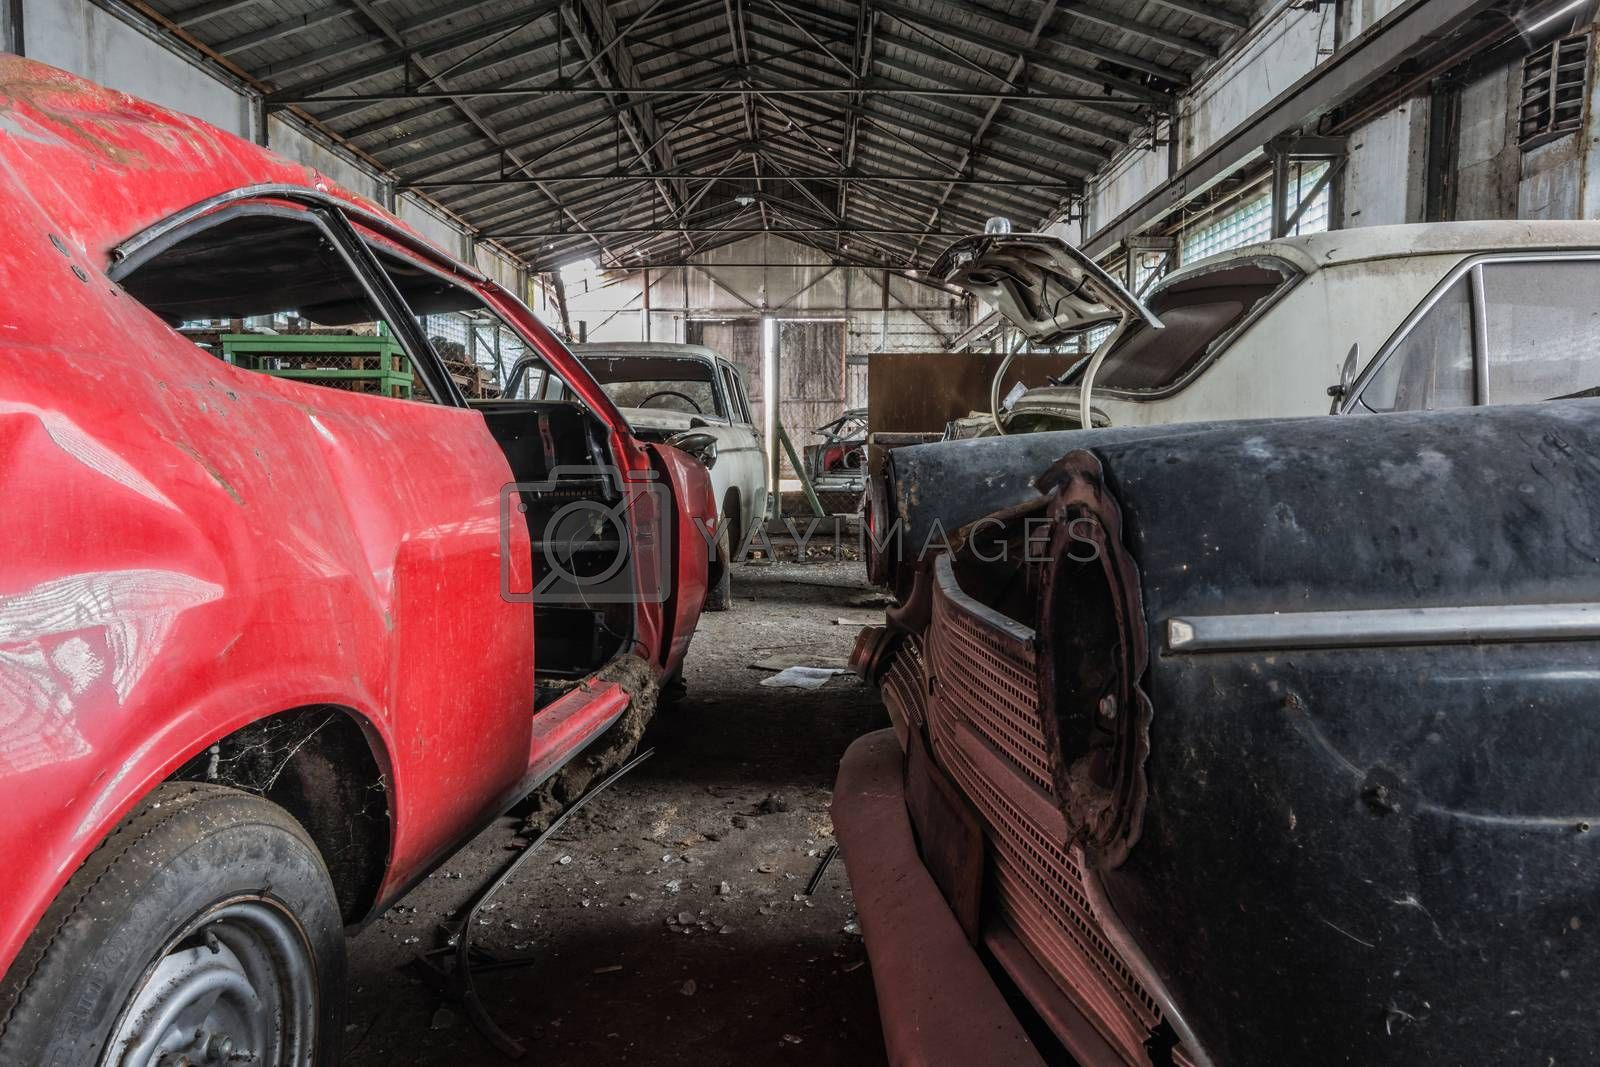 disassembled old cars in a large abandoned hall